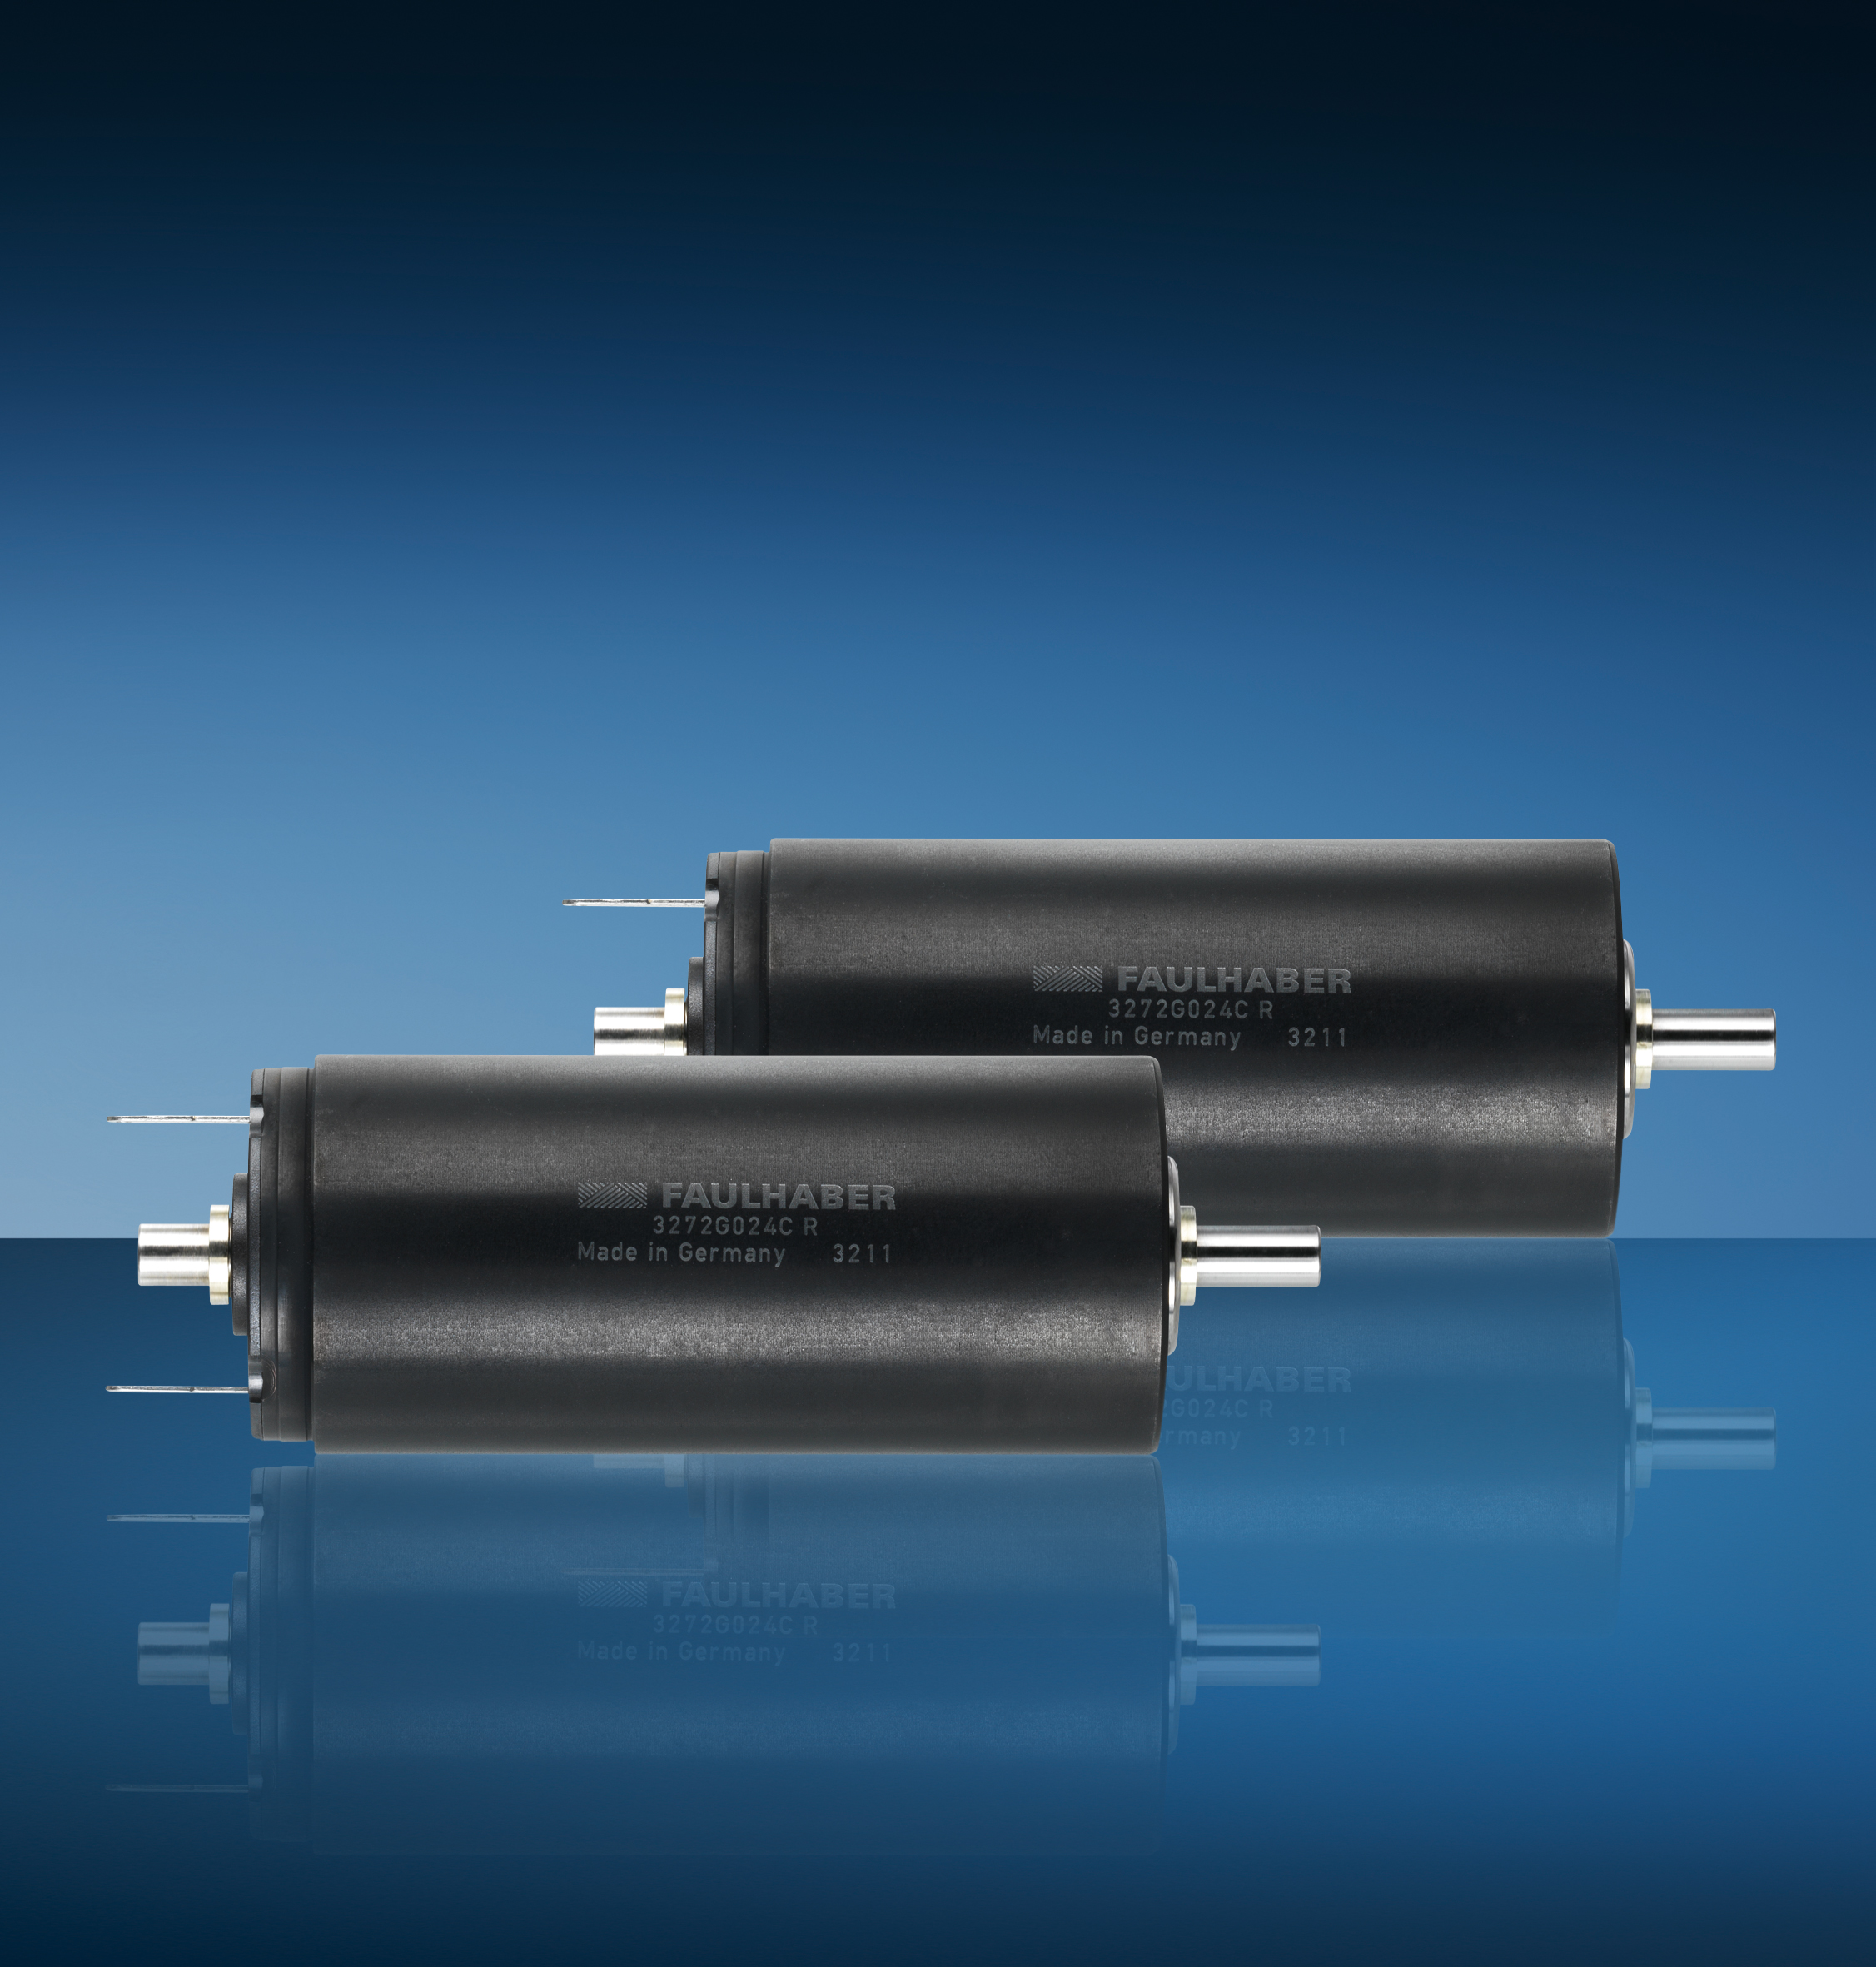 Powerful new dc motor 3272cr from faulhaber micromo zycon for Advanced dc motors inc